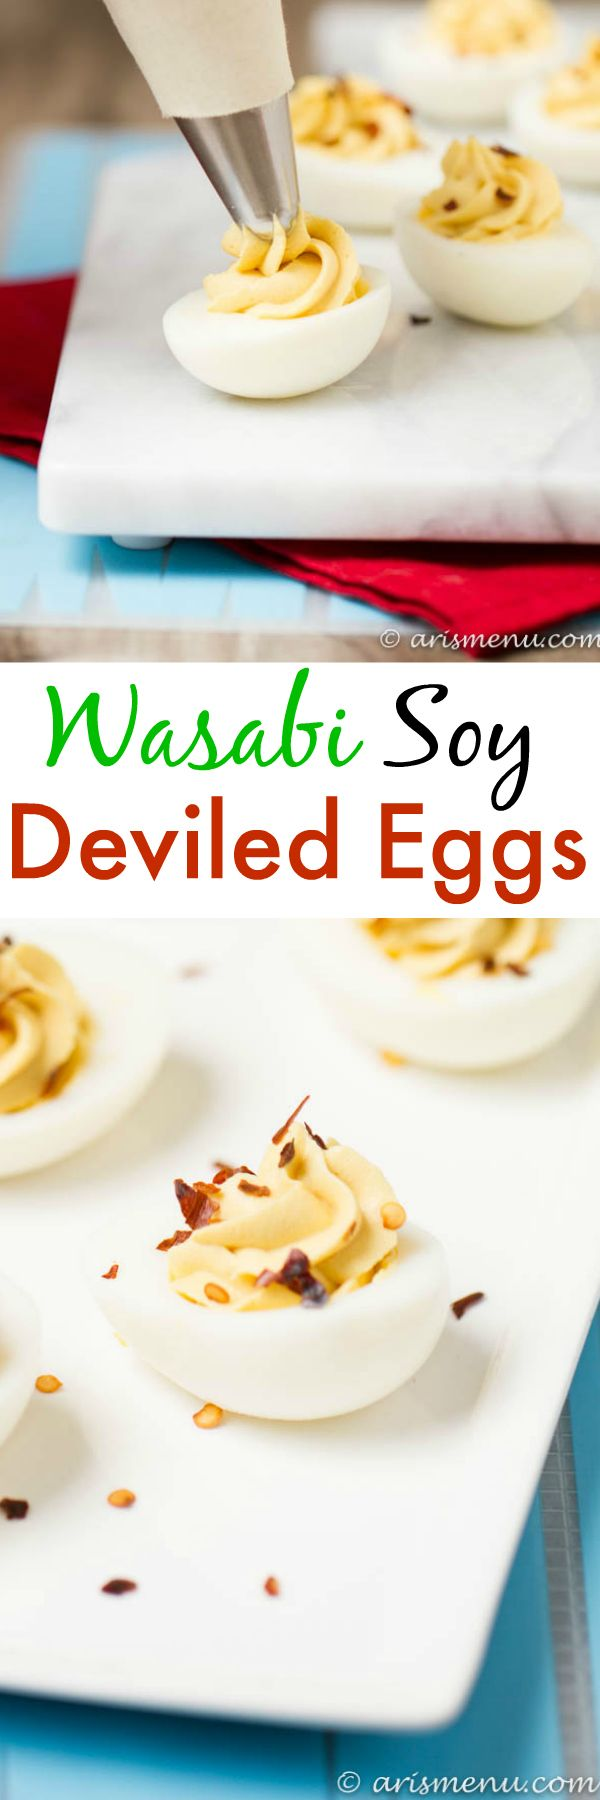 Wasabi Soy Deviled Eggs: Spicy and bold, like a california roll meets ...